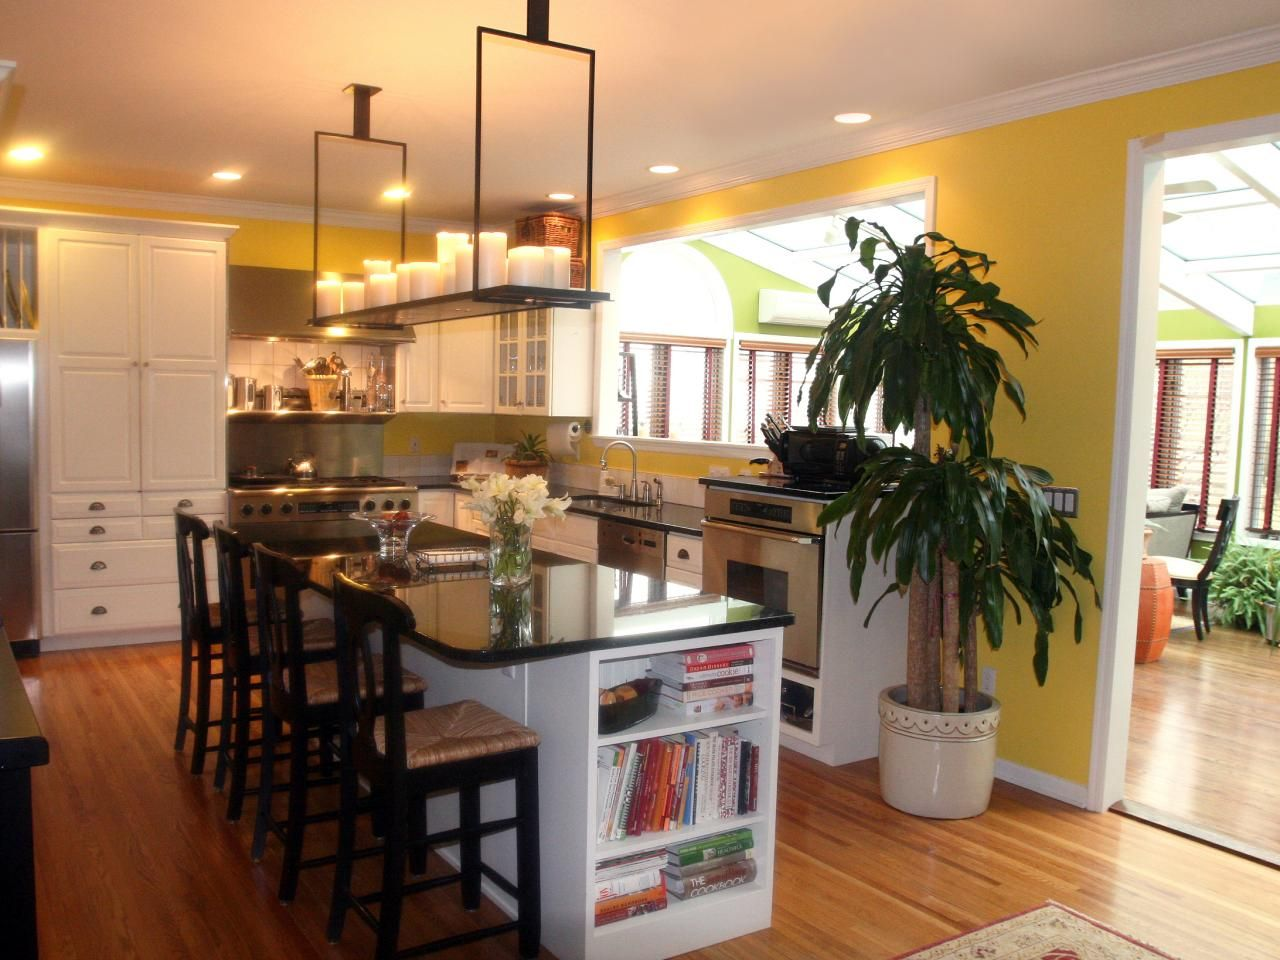 Kitchen Lighting Design Tips | Consideration, Light bulb and Kitchen ...